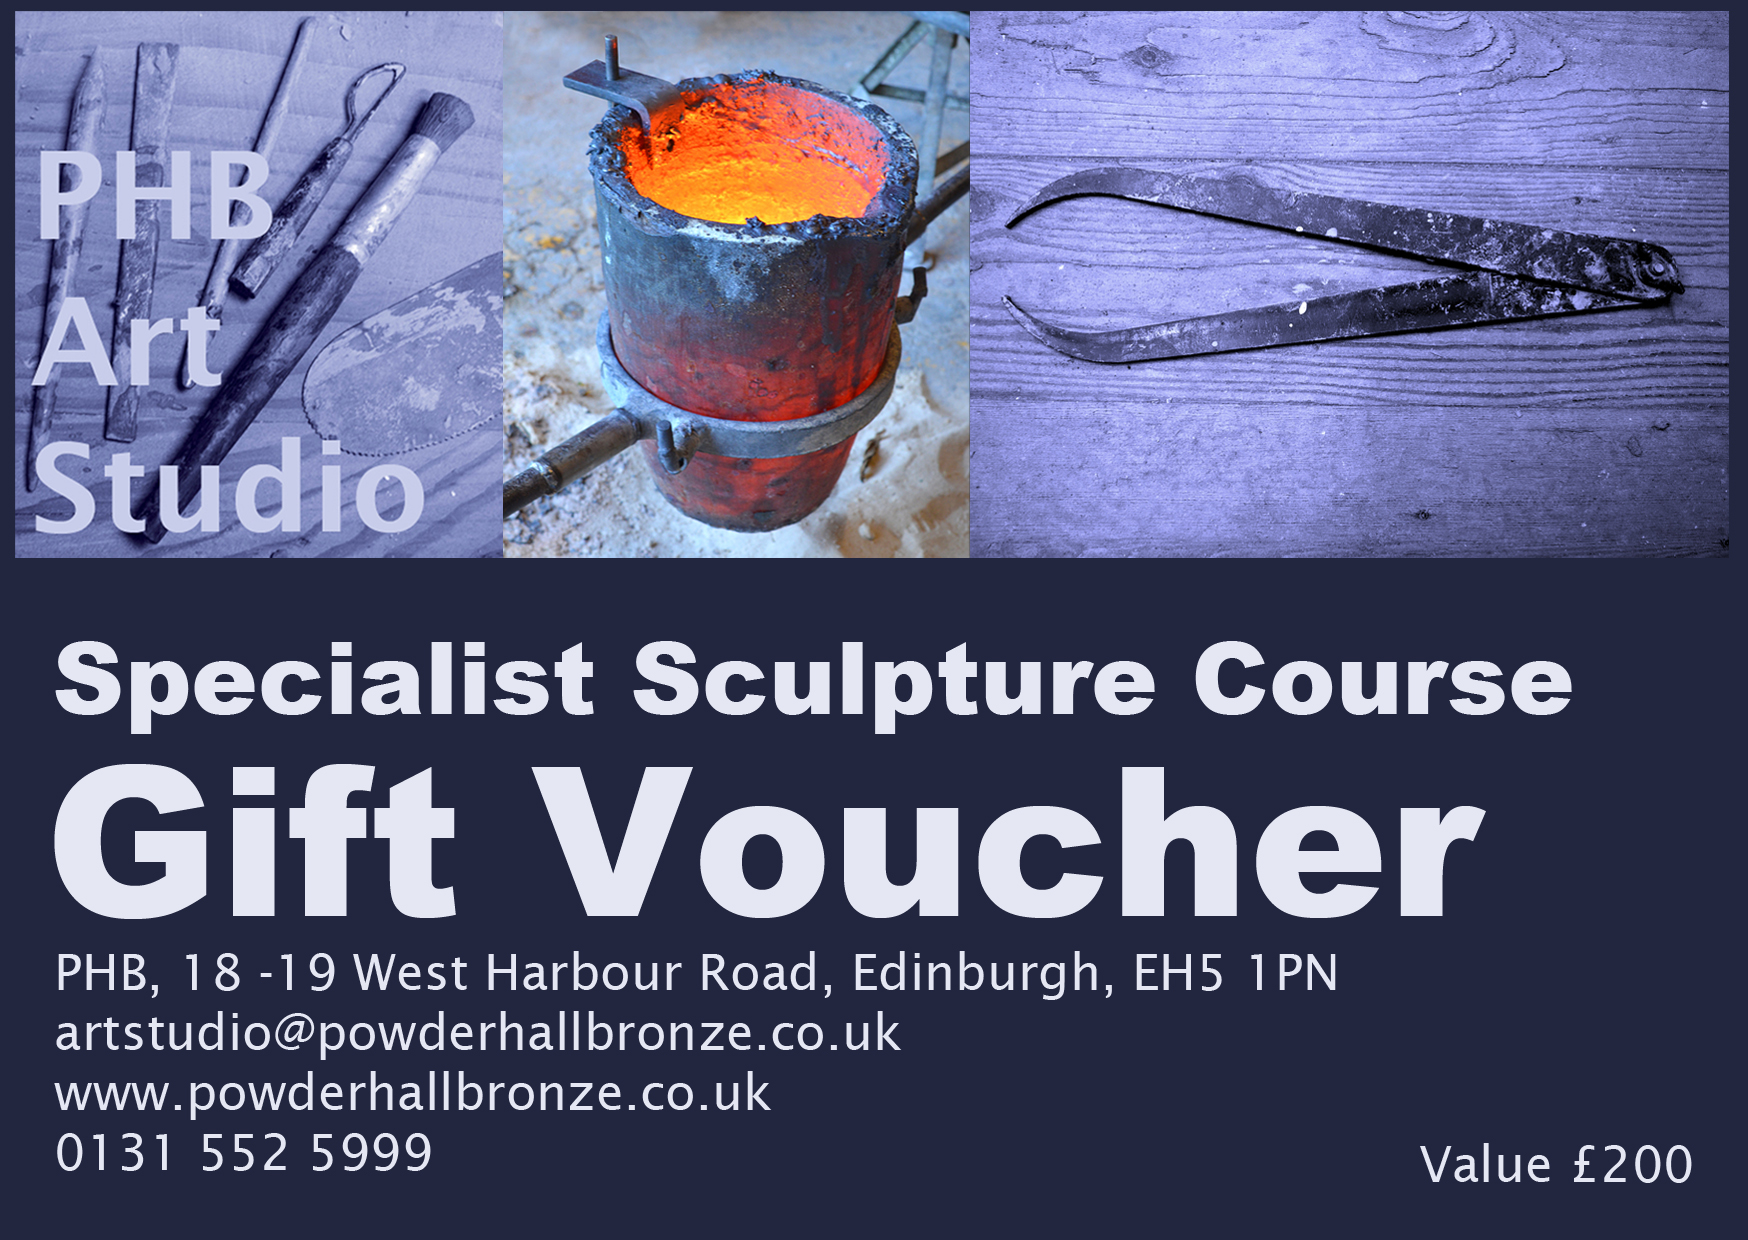 Gift vouchers available - If you would like to purchase a Gift Voucher for one of our courses please enquire here